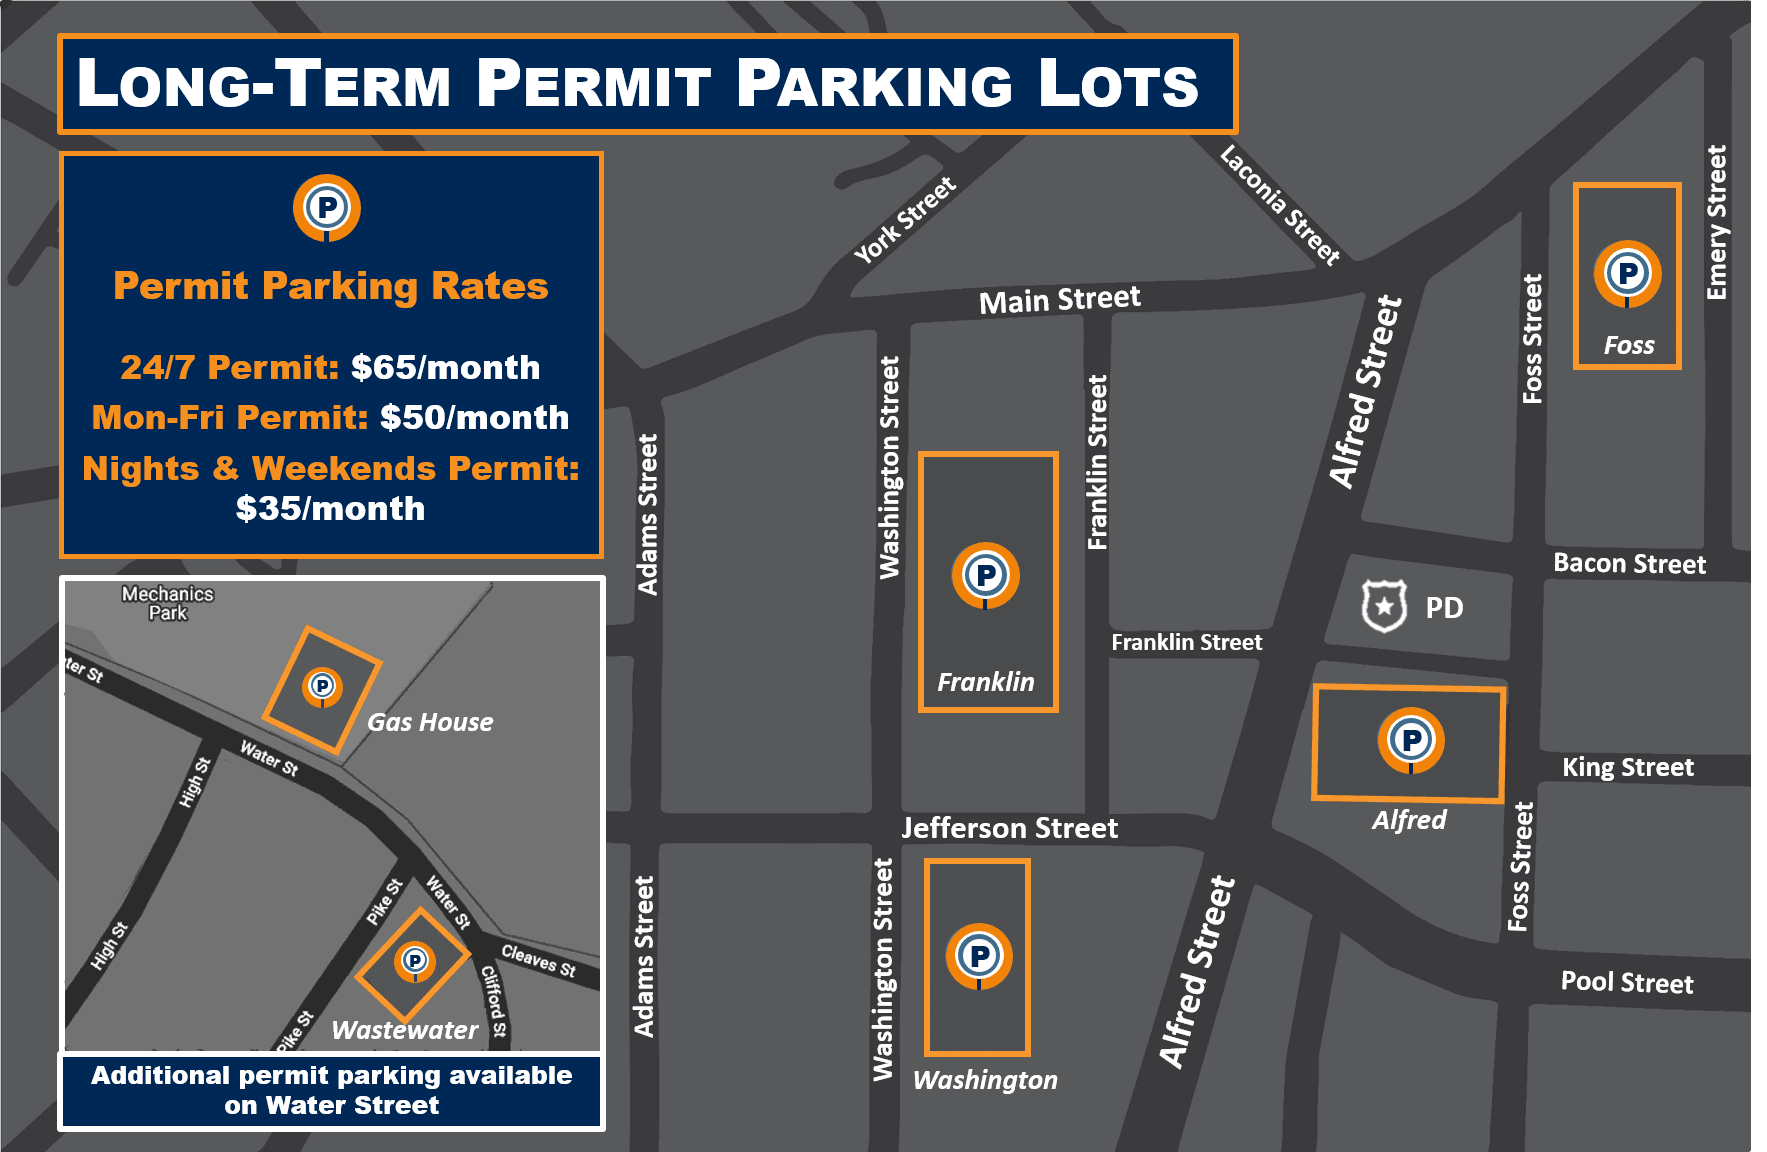 Permit Lot Map